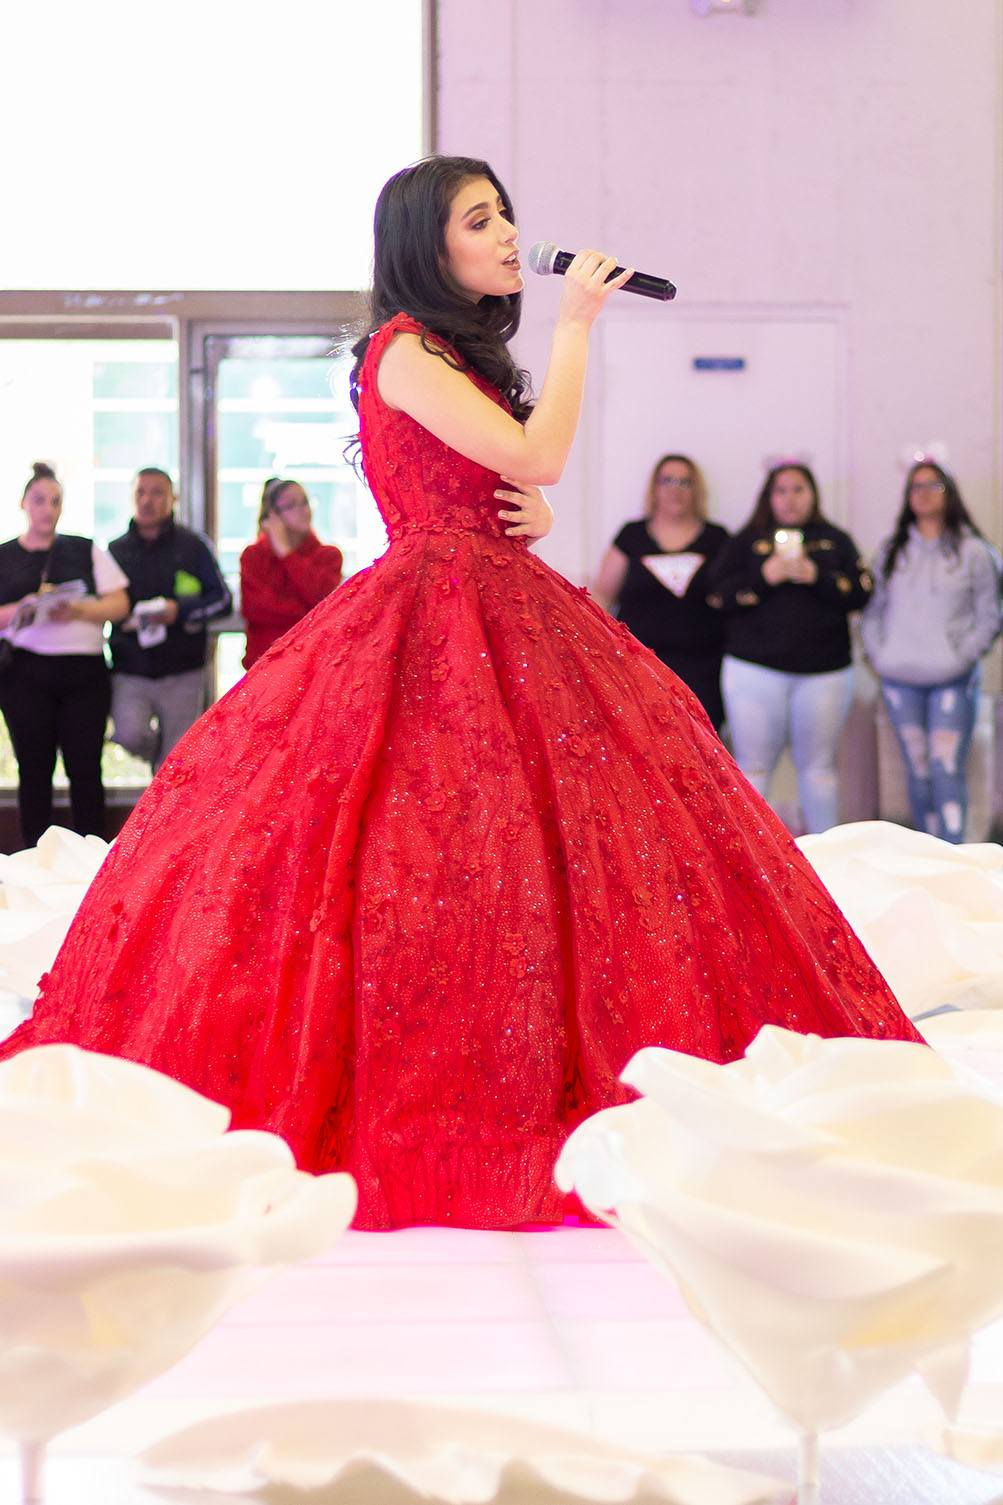 b2783250af9 The annual expo at the Fariplex is hosted by Quinceañera Magazine to  showcase dresses and event services ...